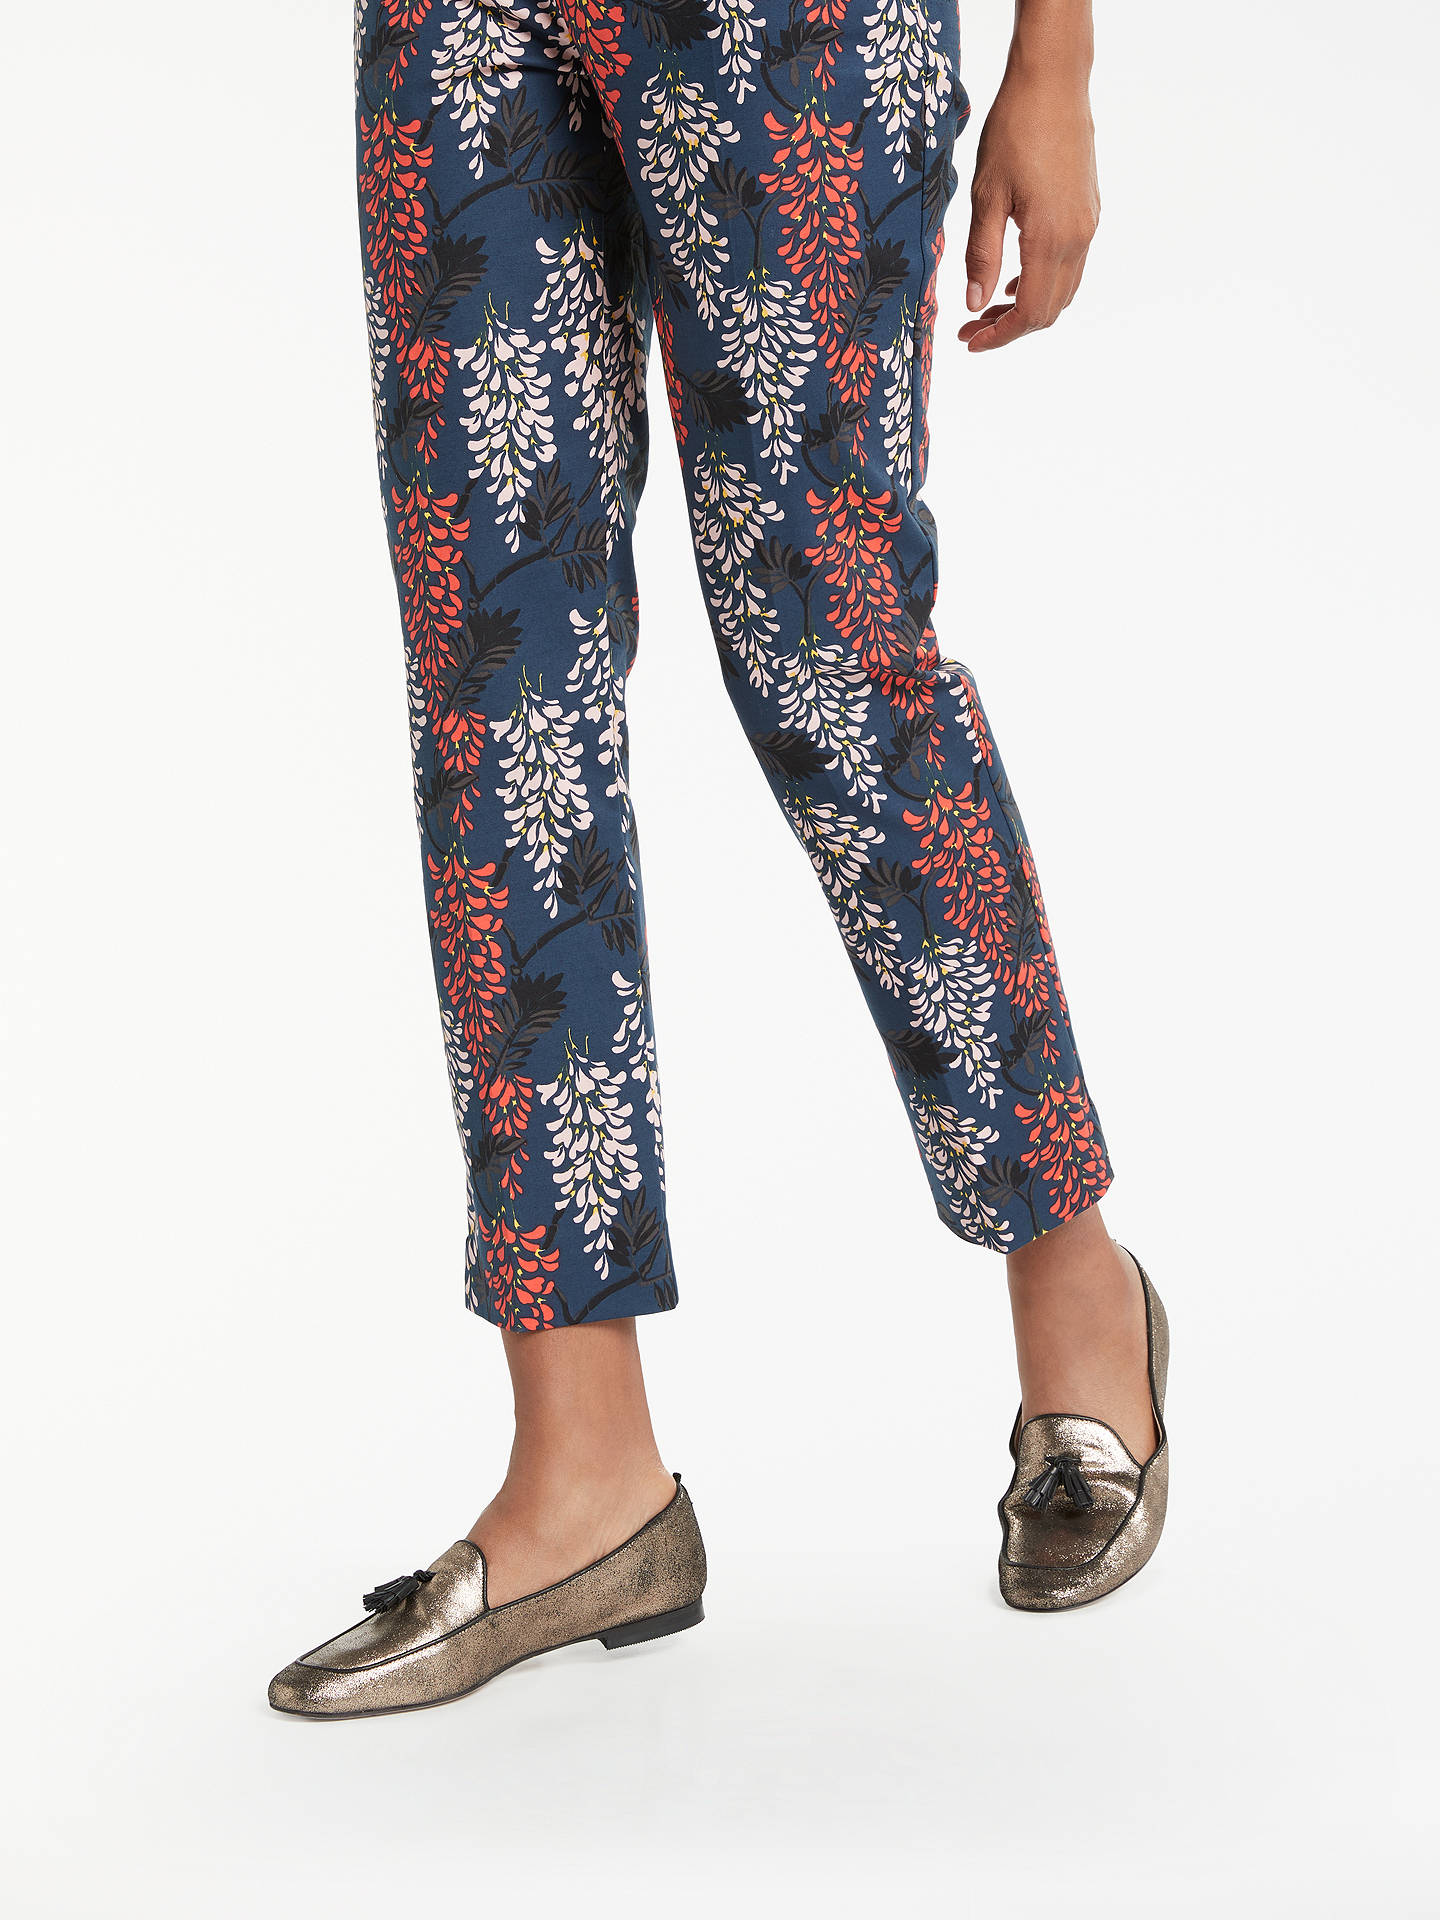 BuyBoden Printed Party Trousers, Ink Pot/Wisteria, 8 Online at johnlewis.com